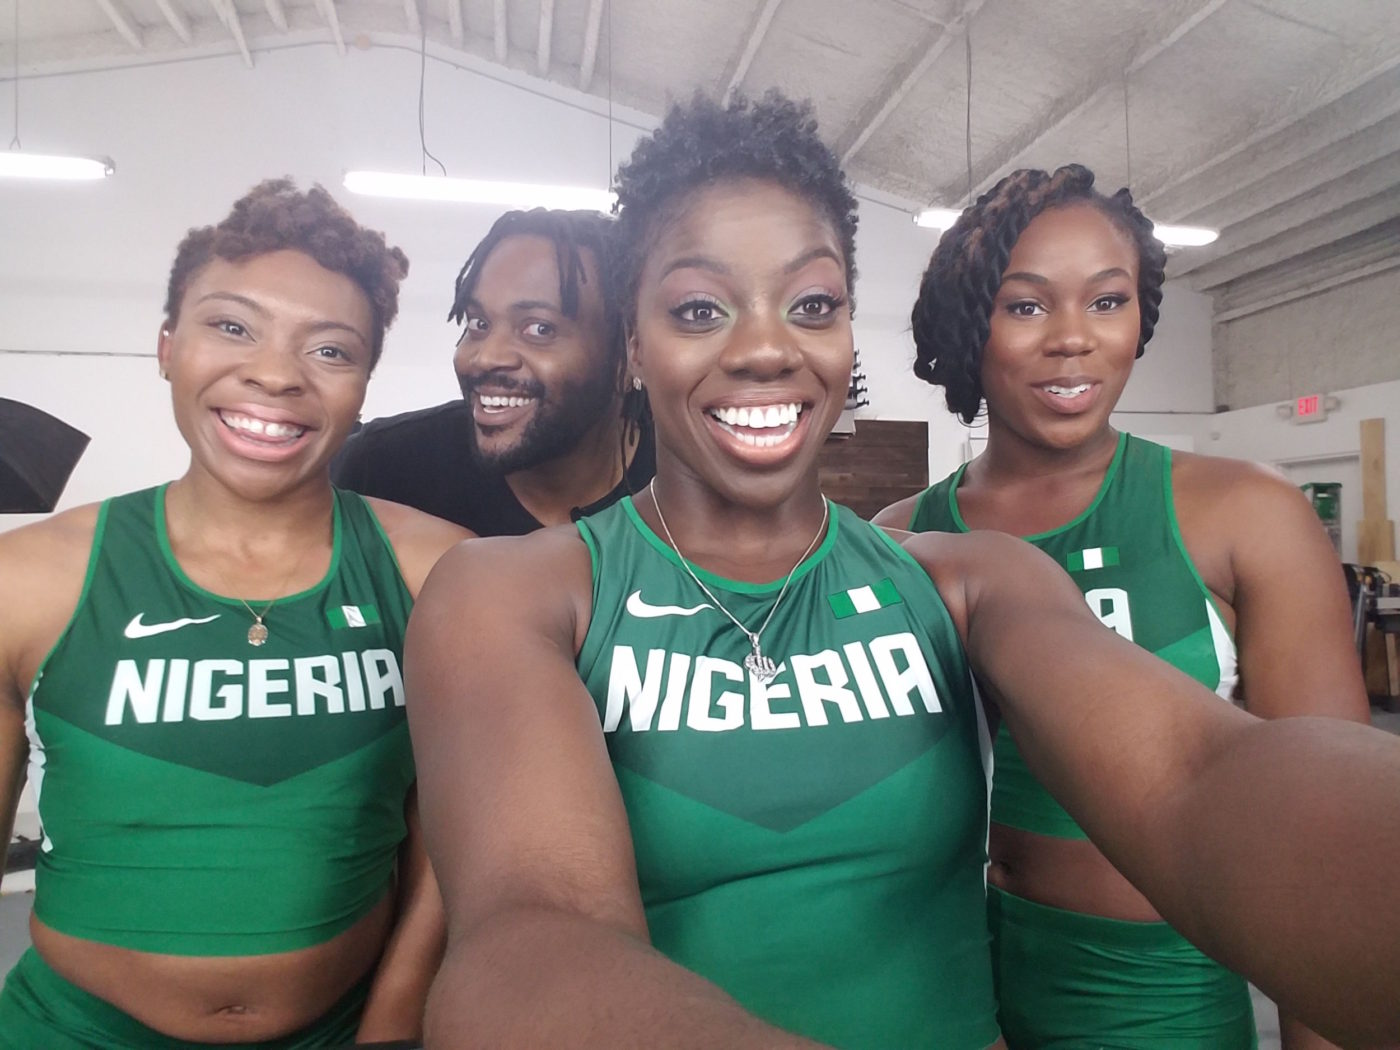 Behind+the+scenes+with+the+Nigeria+Women%E2%80%99s+Bobsled+team+with+photographer%2C+Obi+Grant.+Photo+courtesy+of+Seun+Adigun..jpg?format=1500w